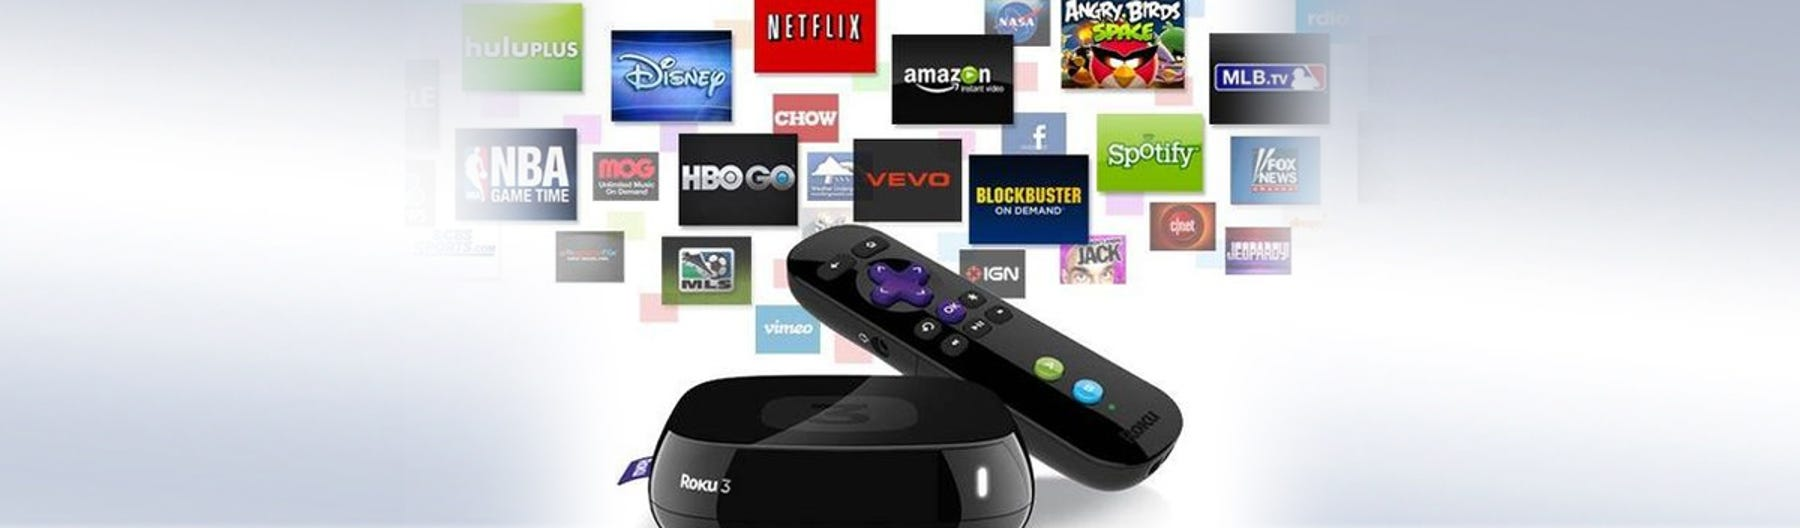 Streaming Devices - Media Streamers & Media Player | Best